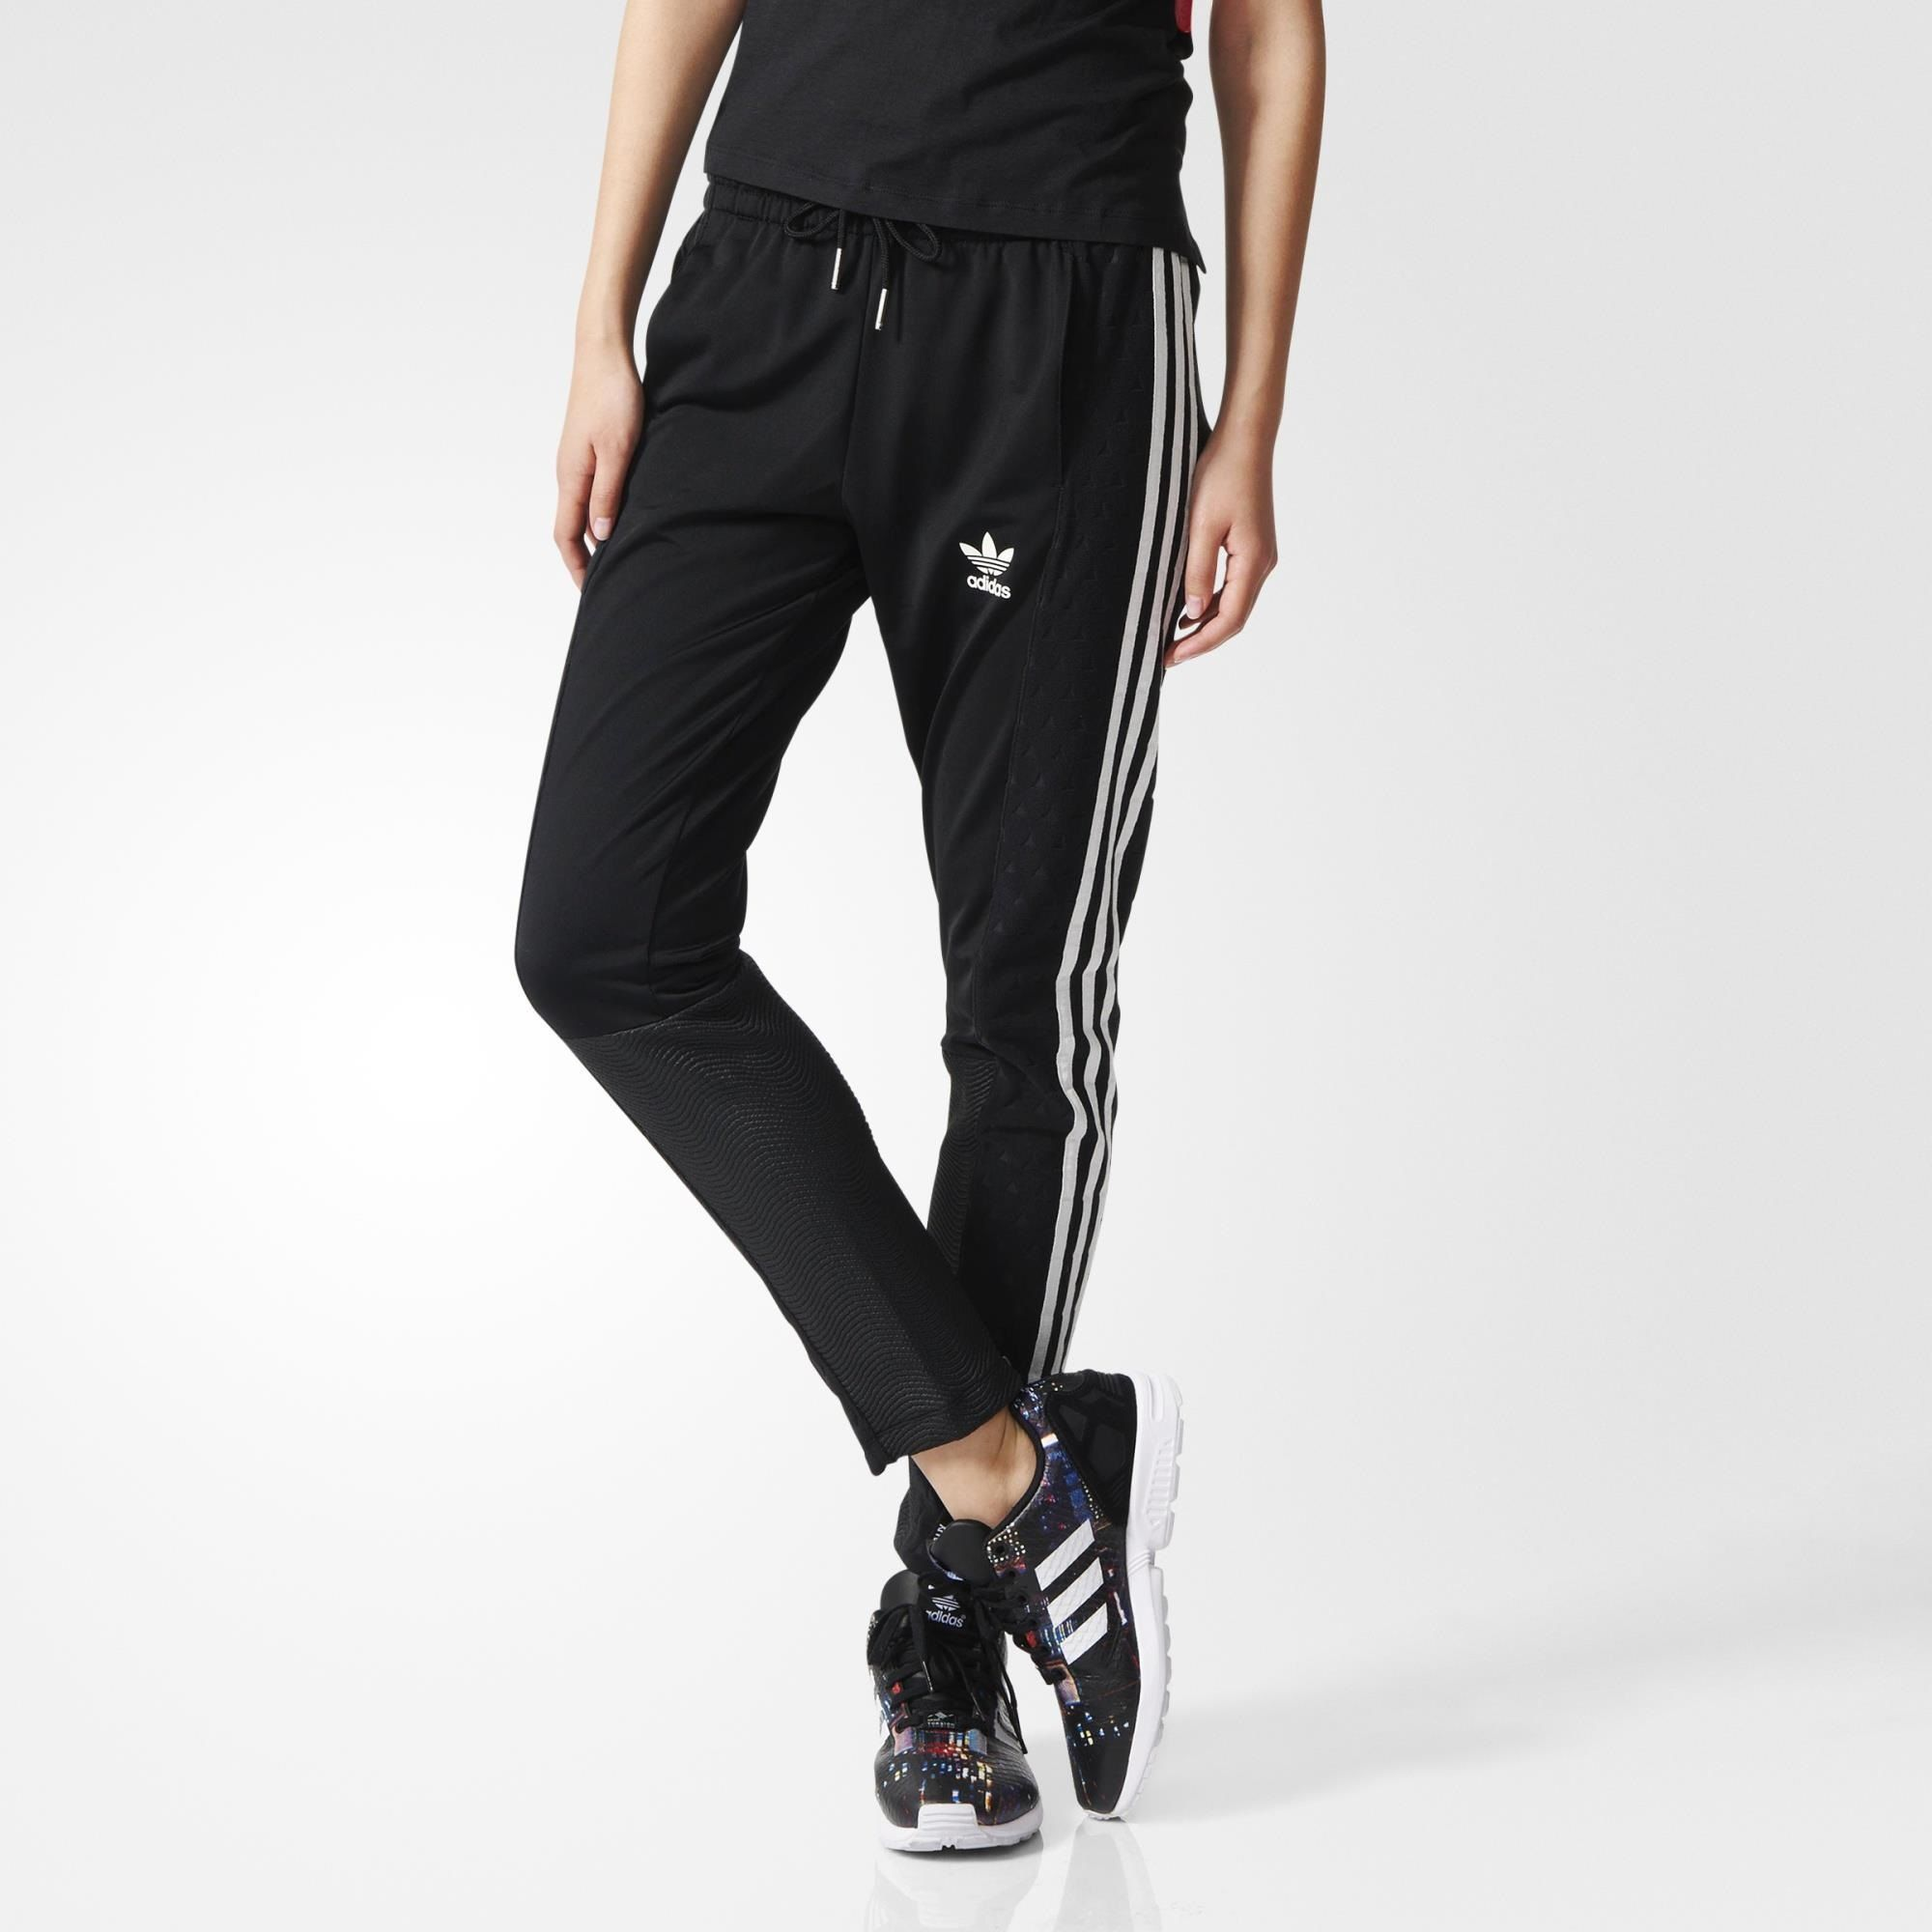 0e74a1f7337bf adidas Superstar Track Pants Berlin - Black